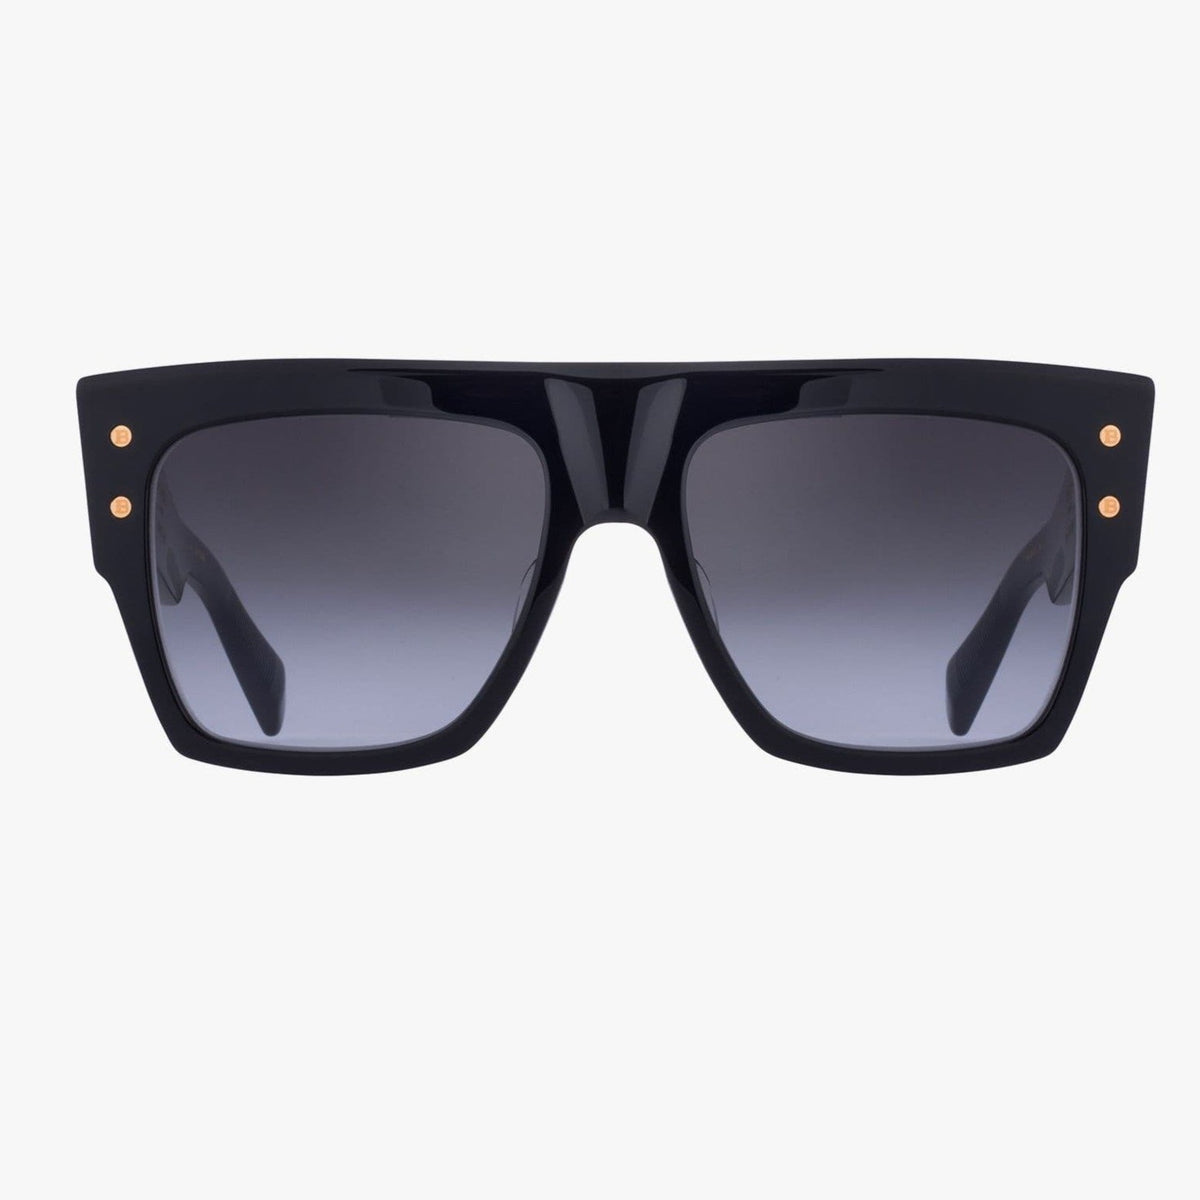 Balmain Unisex Black And Gold-Tone Acetate B-I Sunglasses